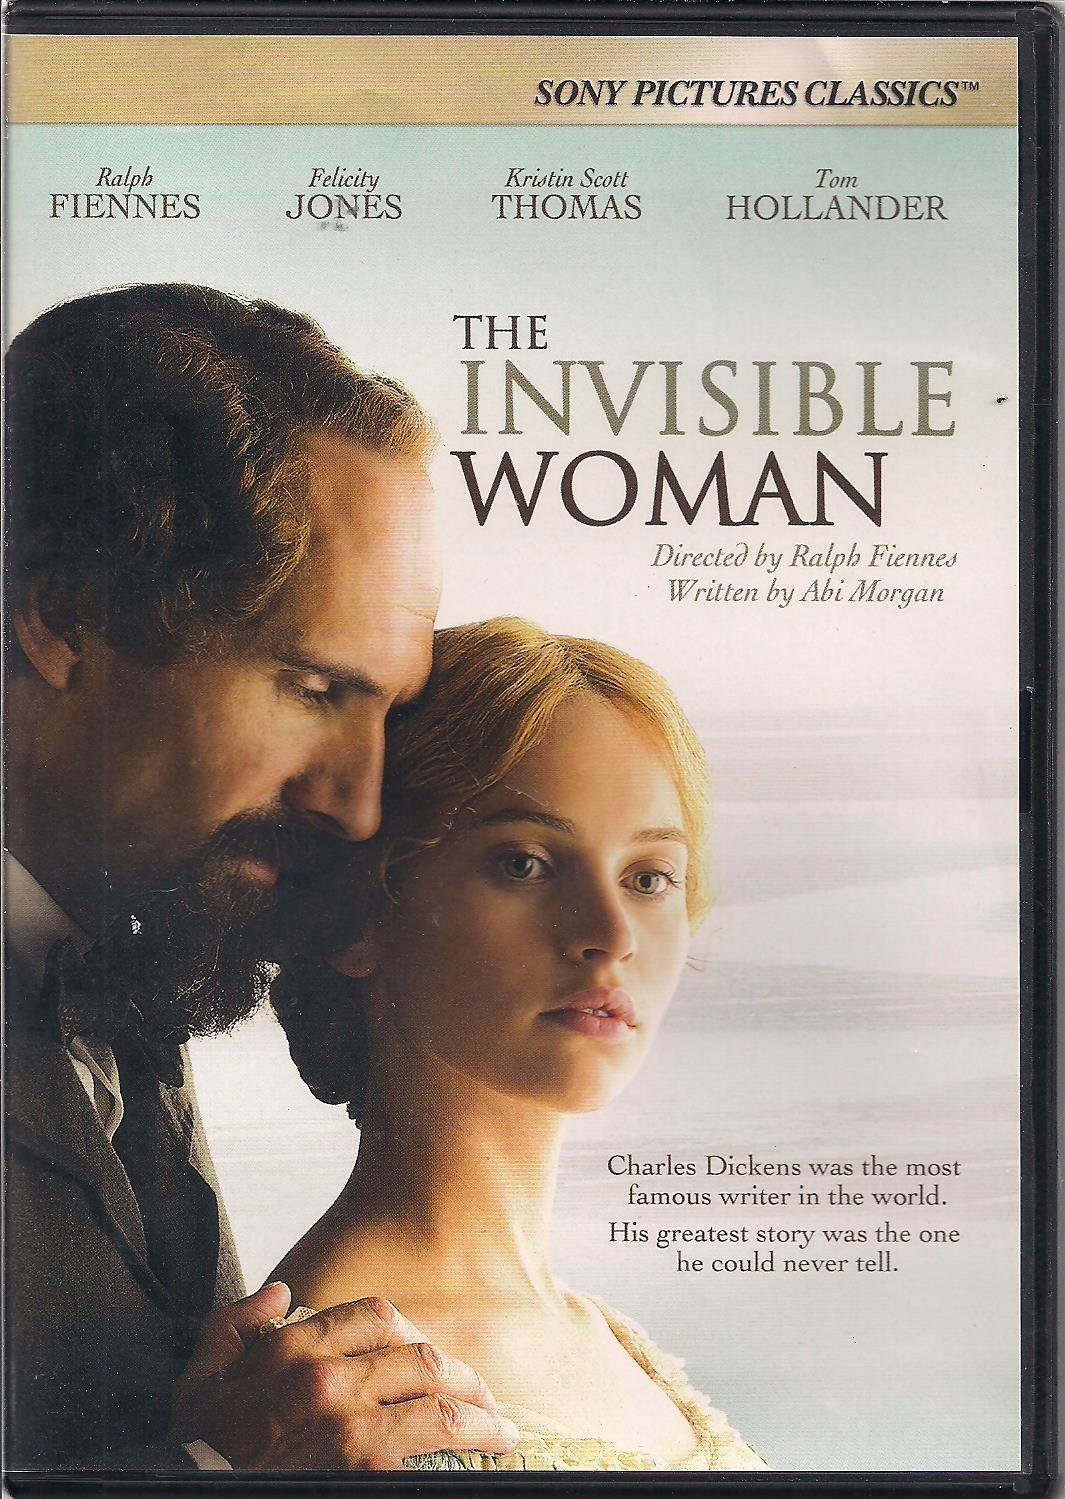 The Invisible woman : un nouveau biopic sur Charles Dickens (Ralph Fiennes) - Page 5 811qYfH2JhL._SL1499_